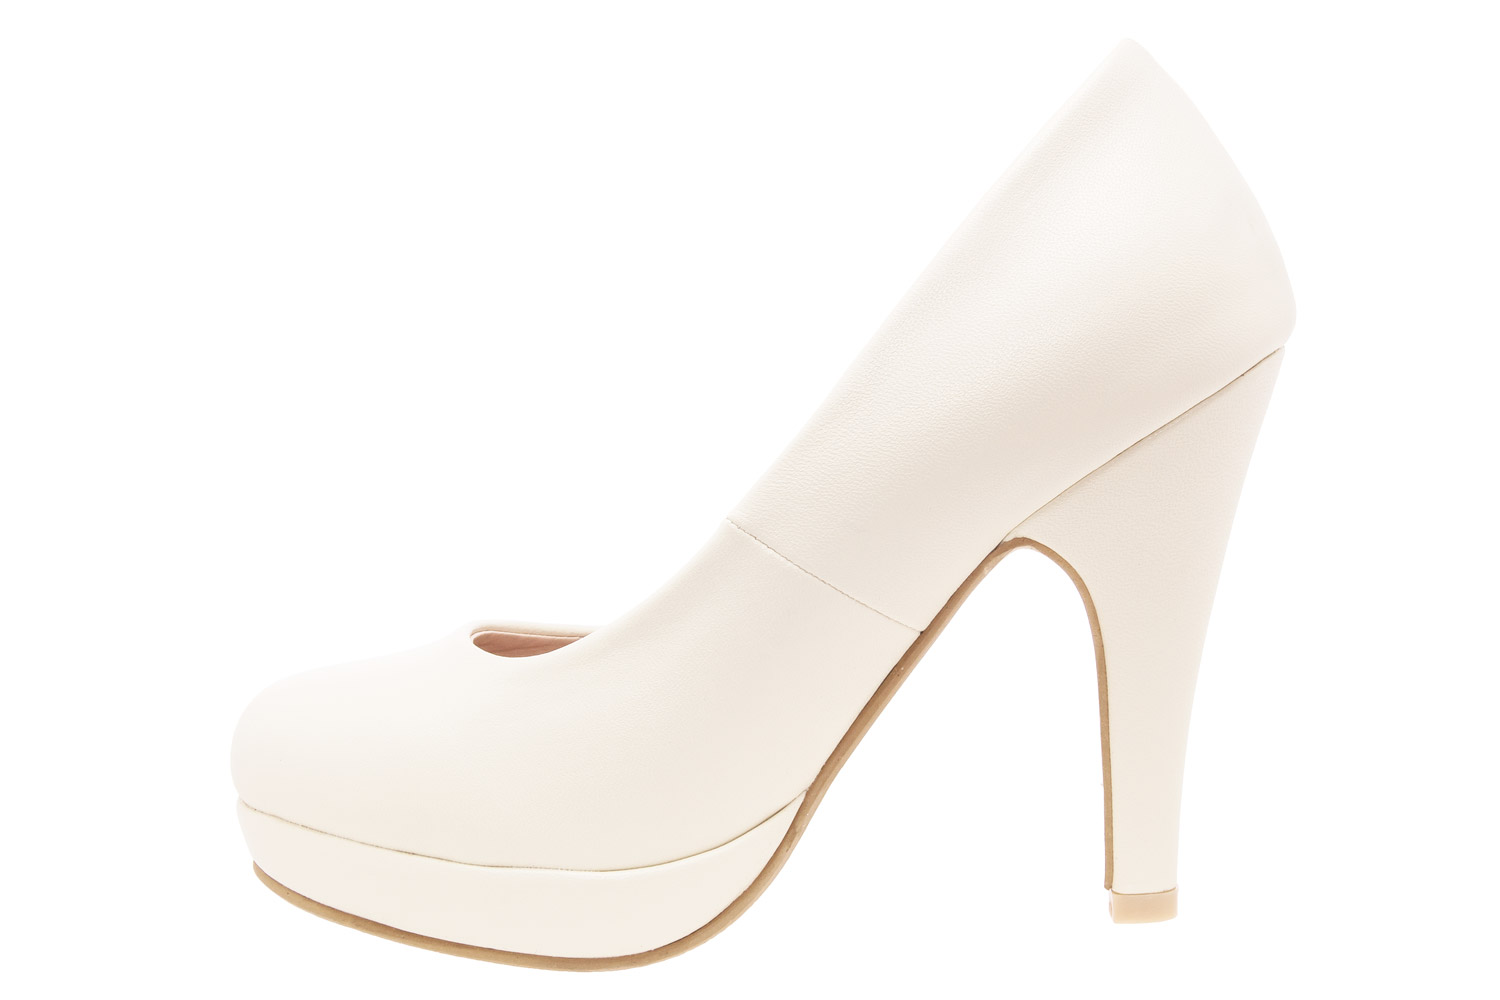 Salones Pumps en Soft Beige y Tacon Stiletto.